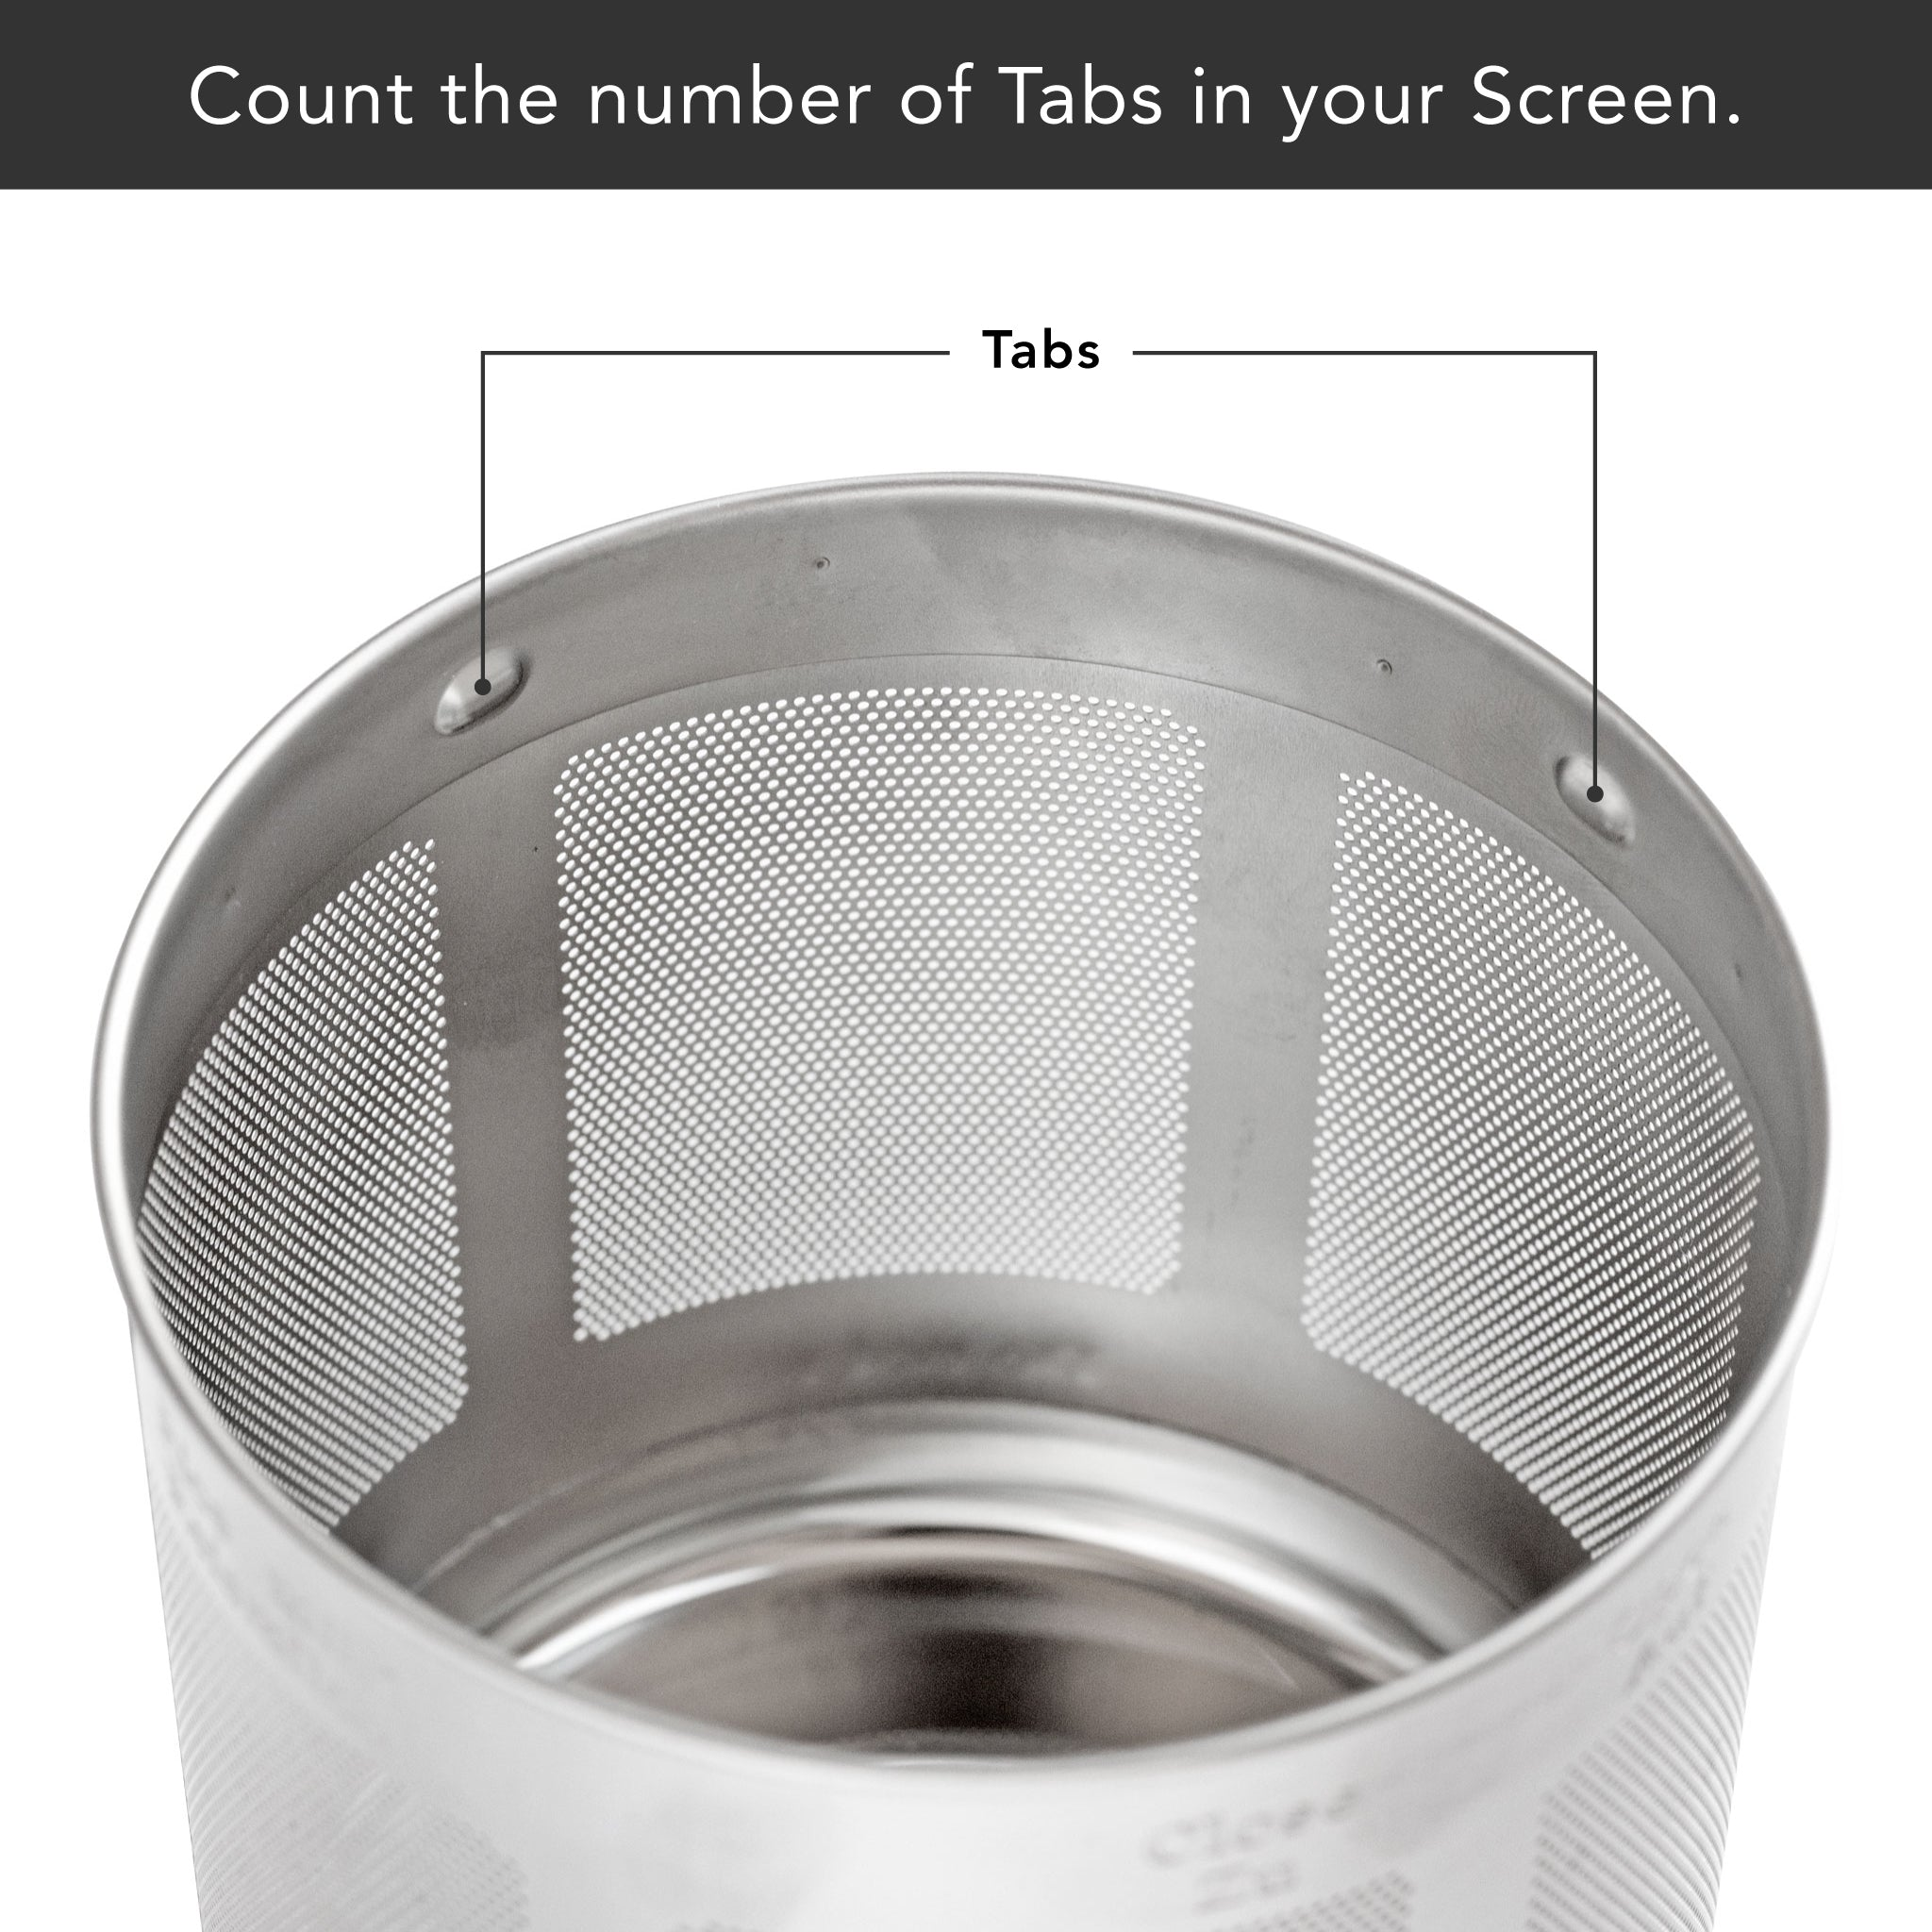 Soyabella® Milk Screen - Number of Tabs in Screen